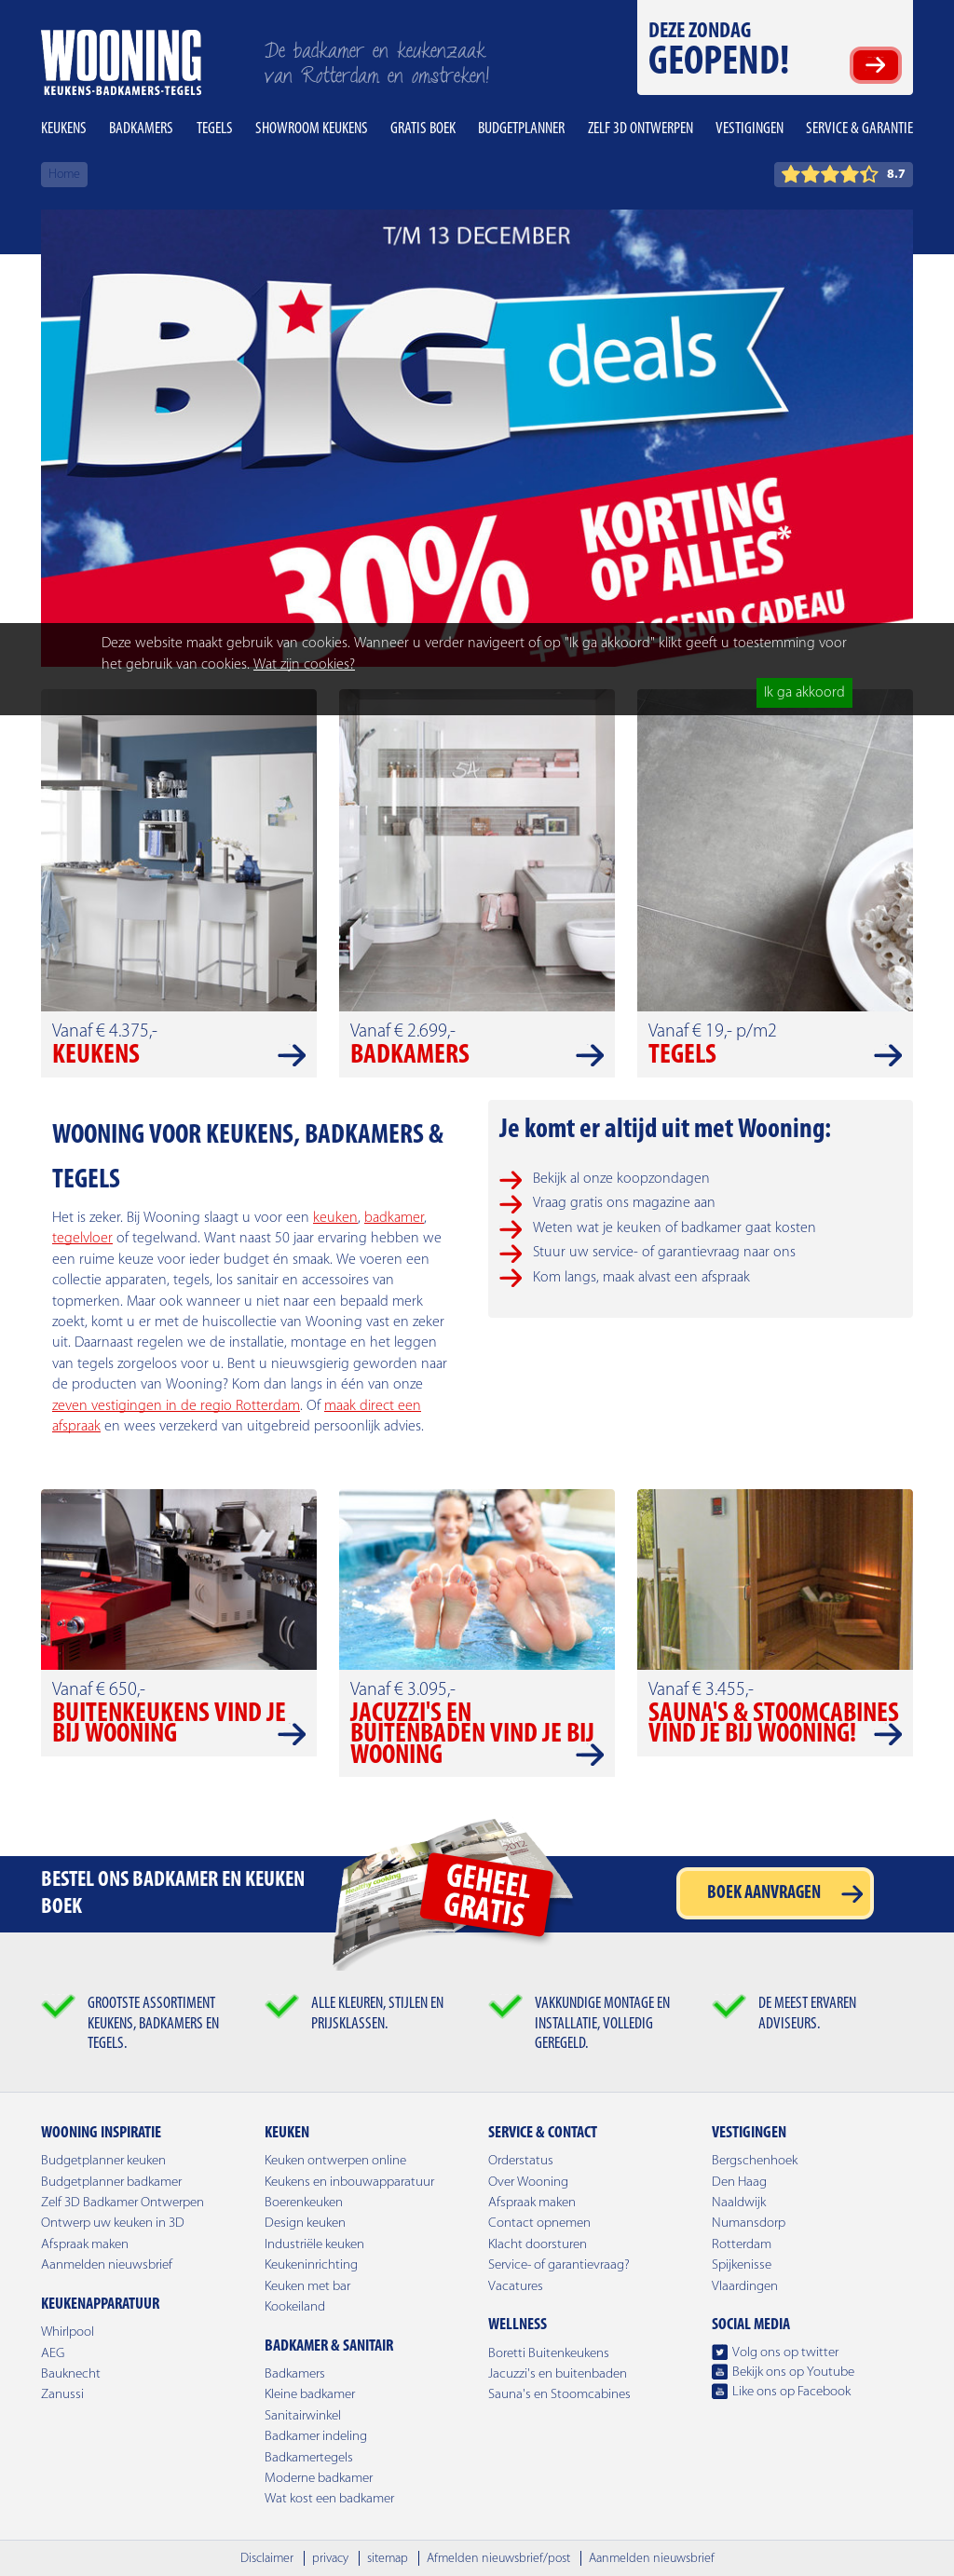 Wooning Keukens Badkamers Tegels S Competitors Revenue Number Of Employees Funding Acquisitions News Owler Company Profile